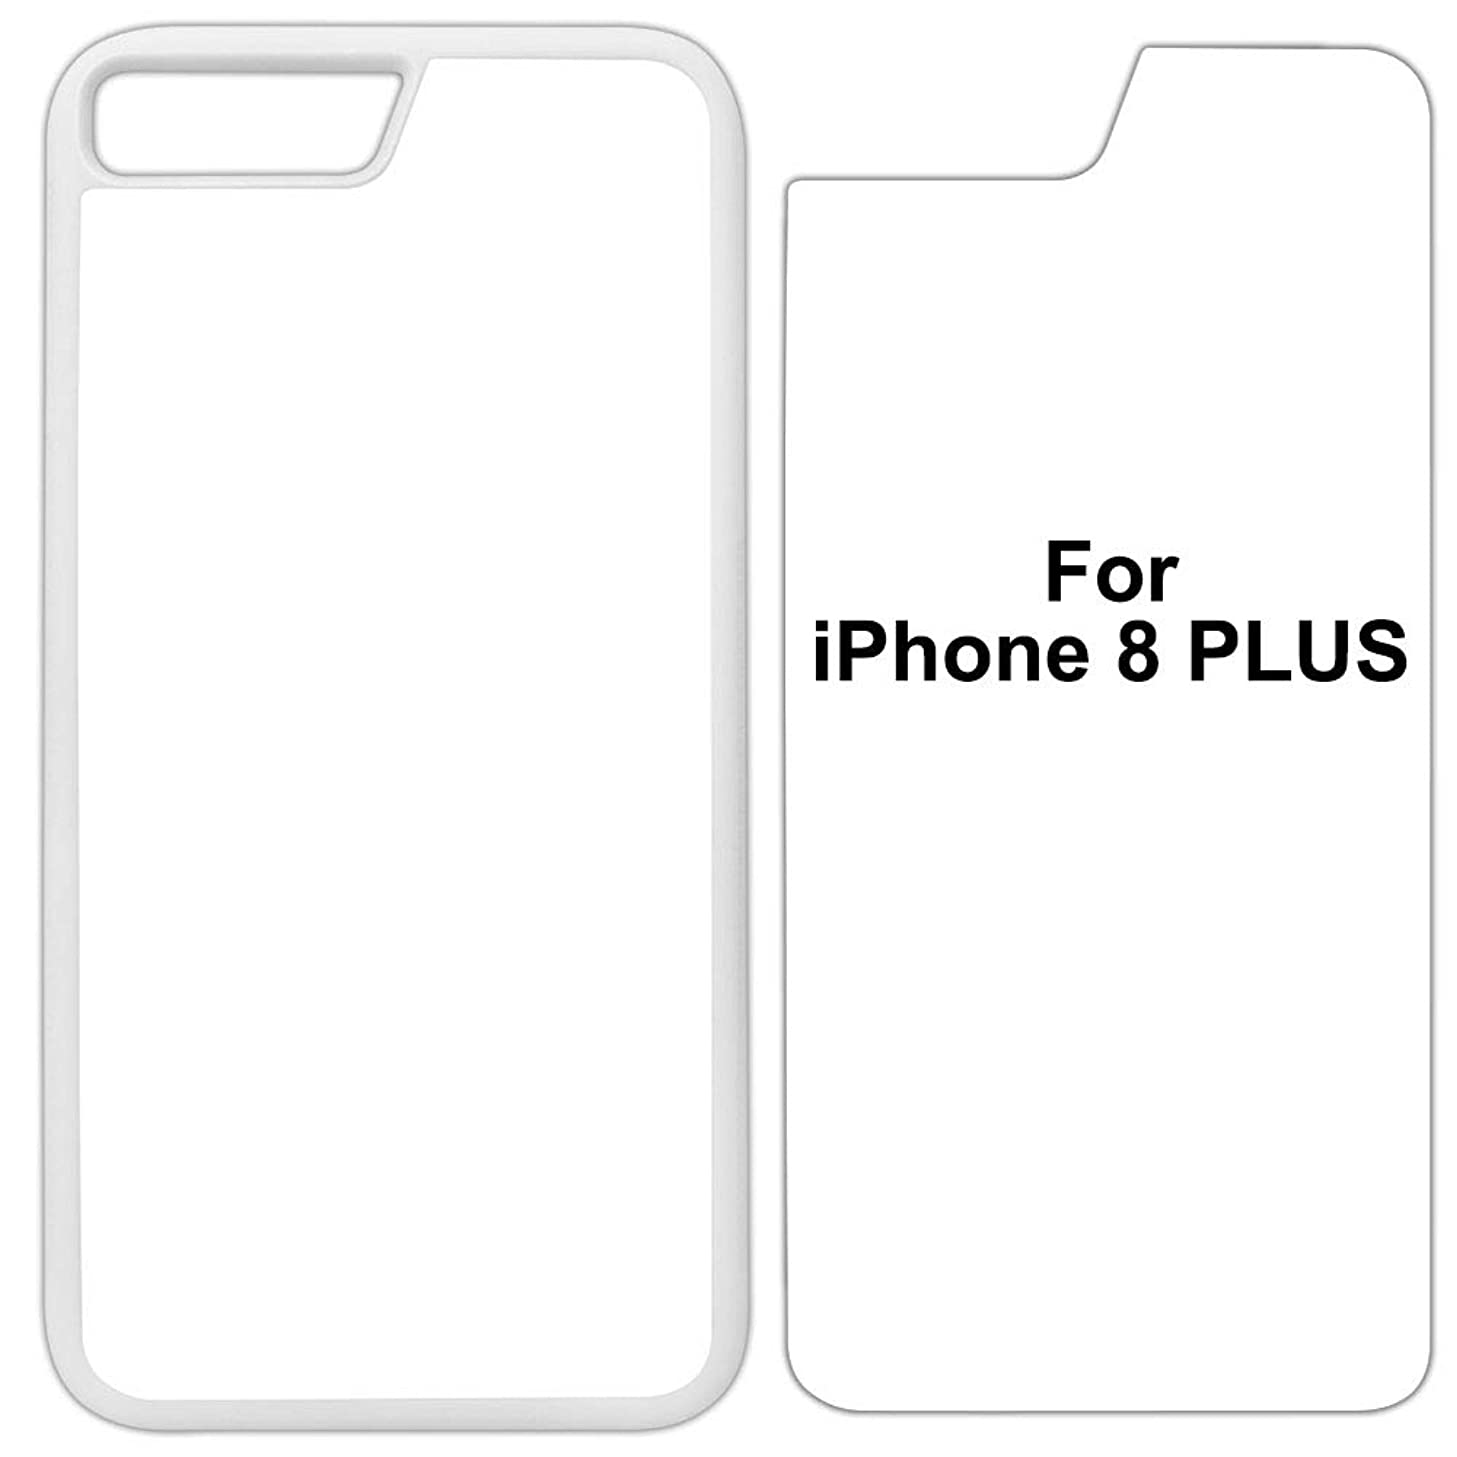 5 x Innosub Sublimation Blank Cases Compatible with Apple iPhone 8 Plus-Rubber-White - Blank Dye Cases and Inserts for Dye Sublimation Phone Cover/Blank Printable Cases, Made by INNOSUB USA